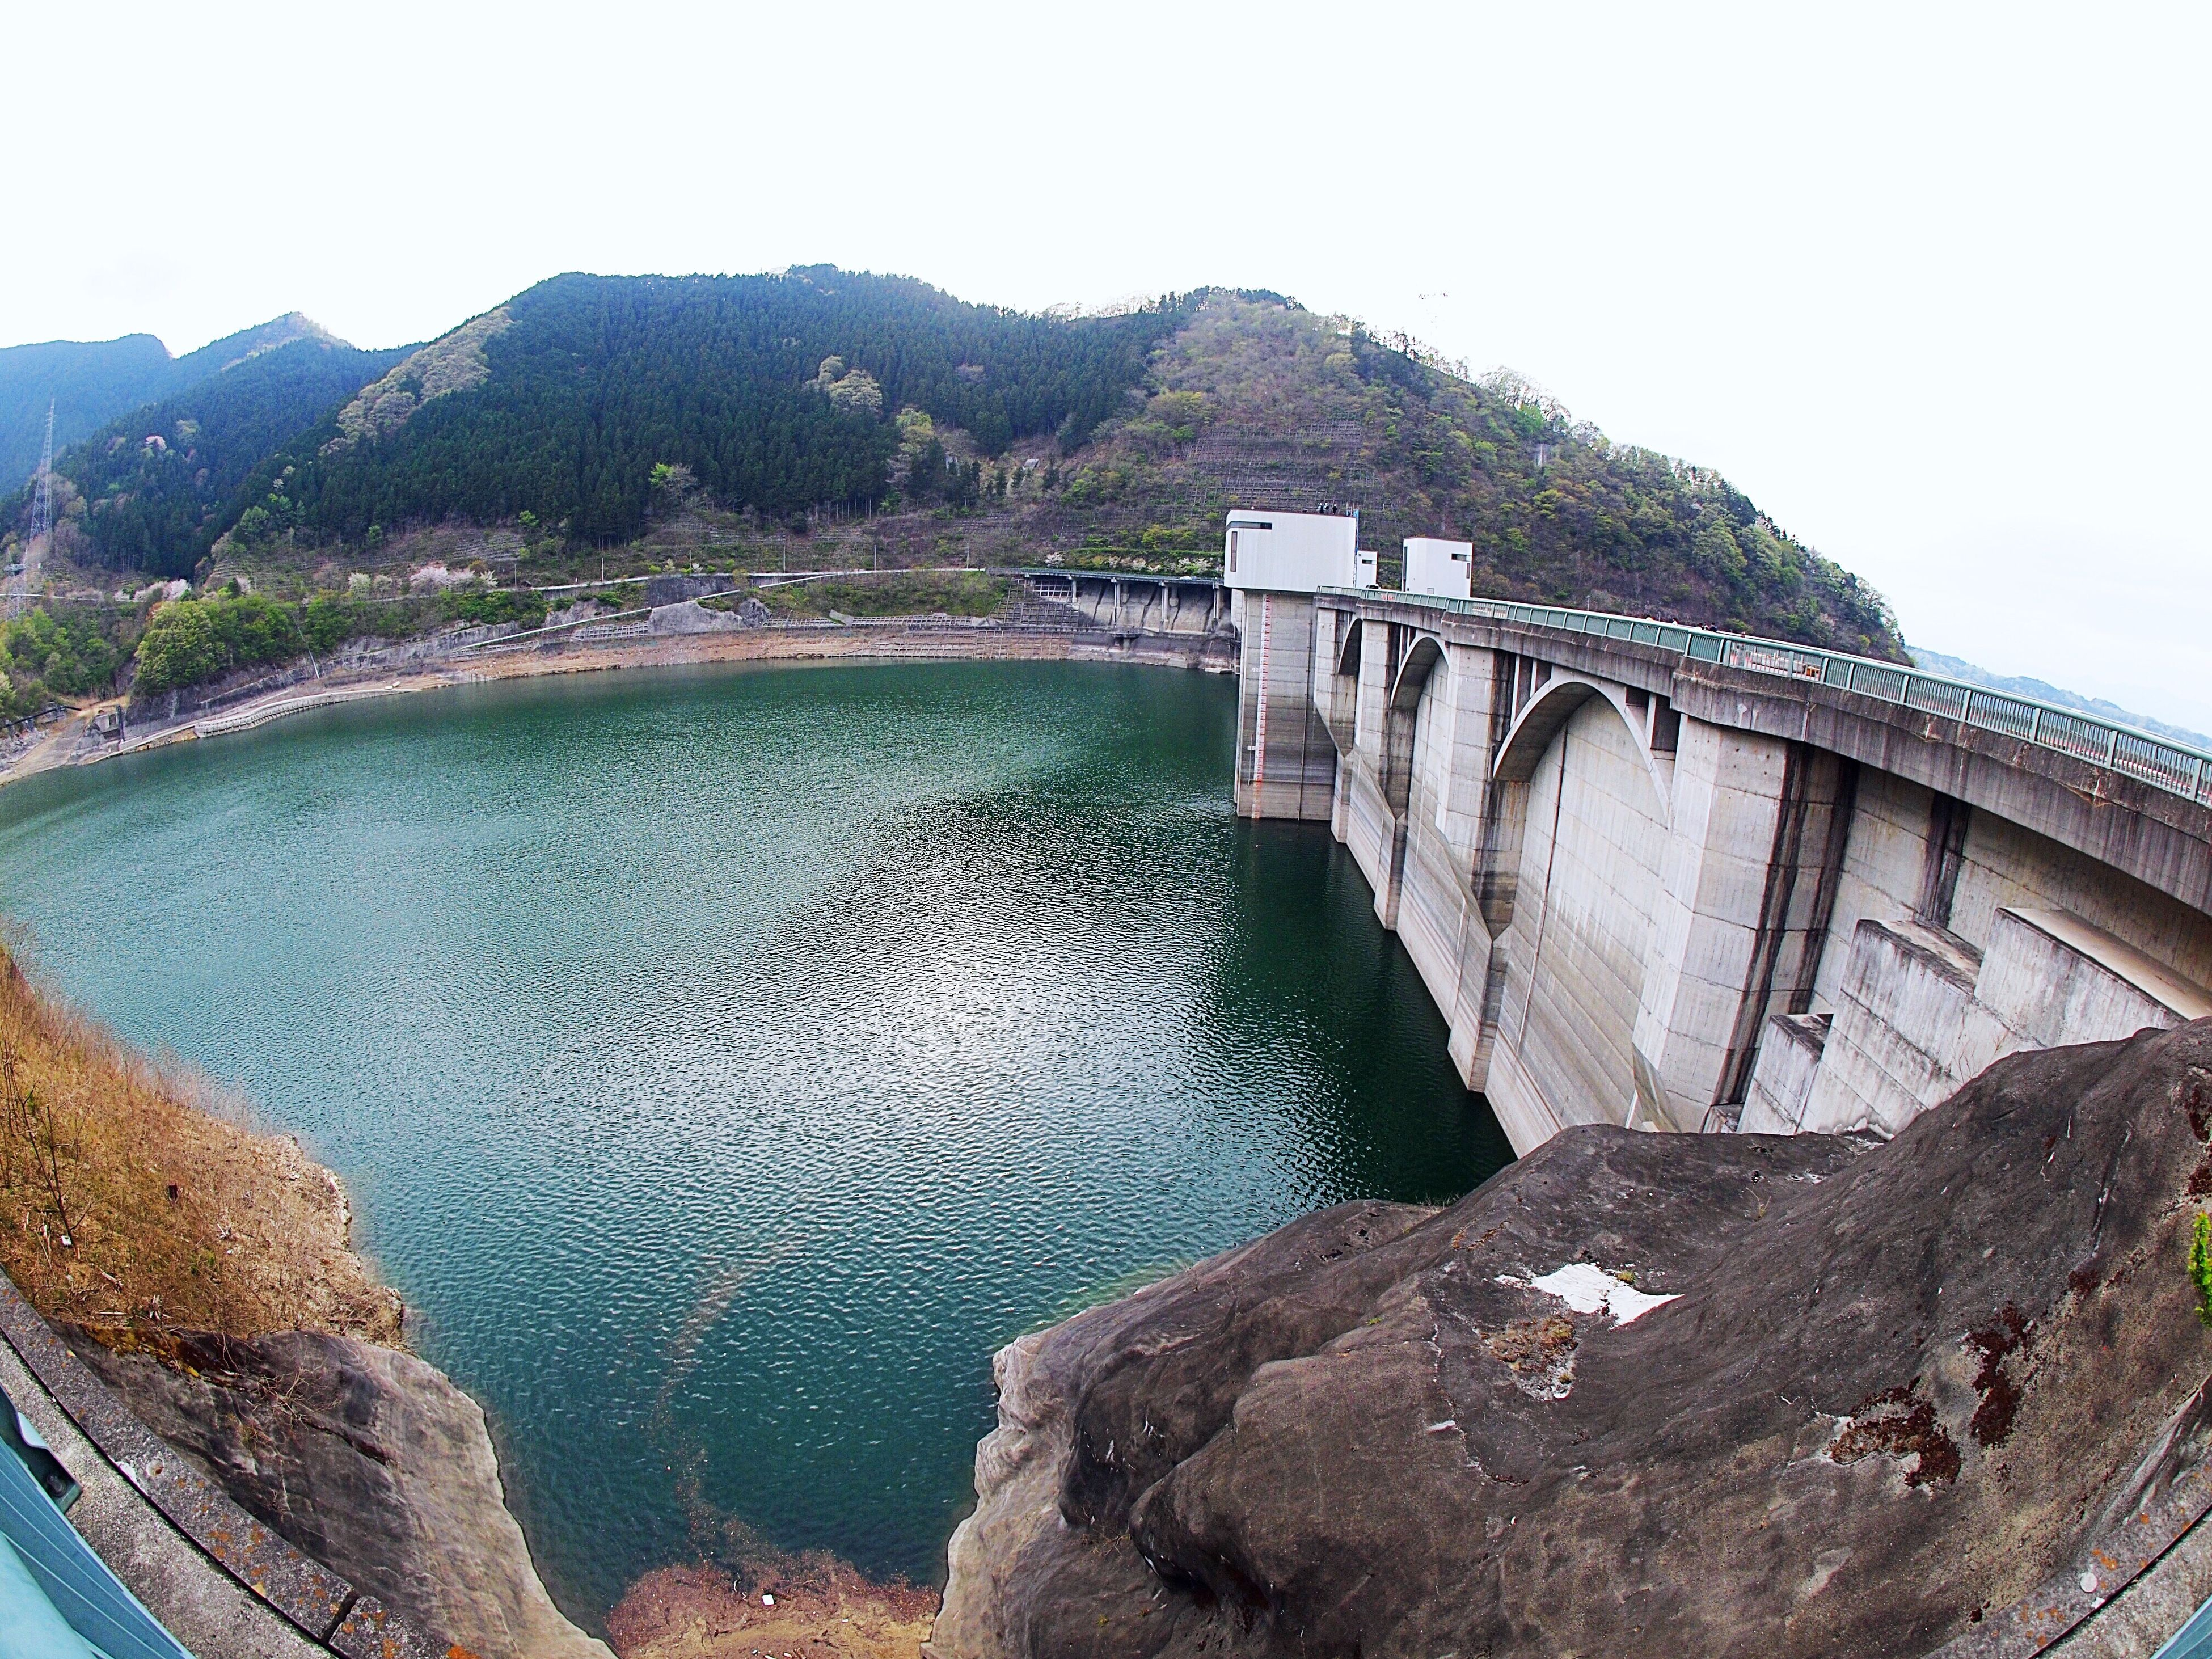 hydroelectric power, dam, water, mountain, bridge - man made structure, fuel and power generation, renewable energy, engineering, river, built structure, architecture, outdoors, day, nature, connection, no people, scenics, mountain range, alternative energy, water conservation, power station, beauty in nature, travel destinations, sky, clear sky, irrigation equipment